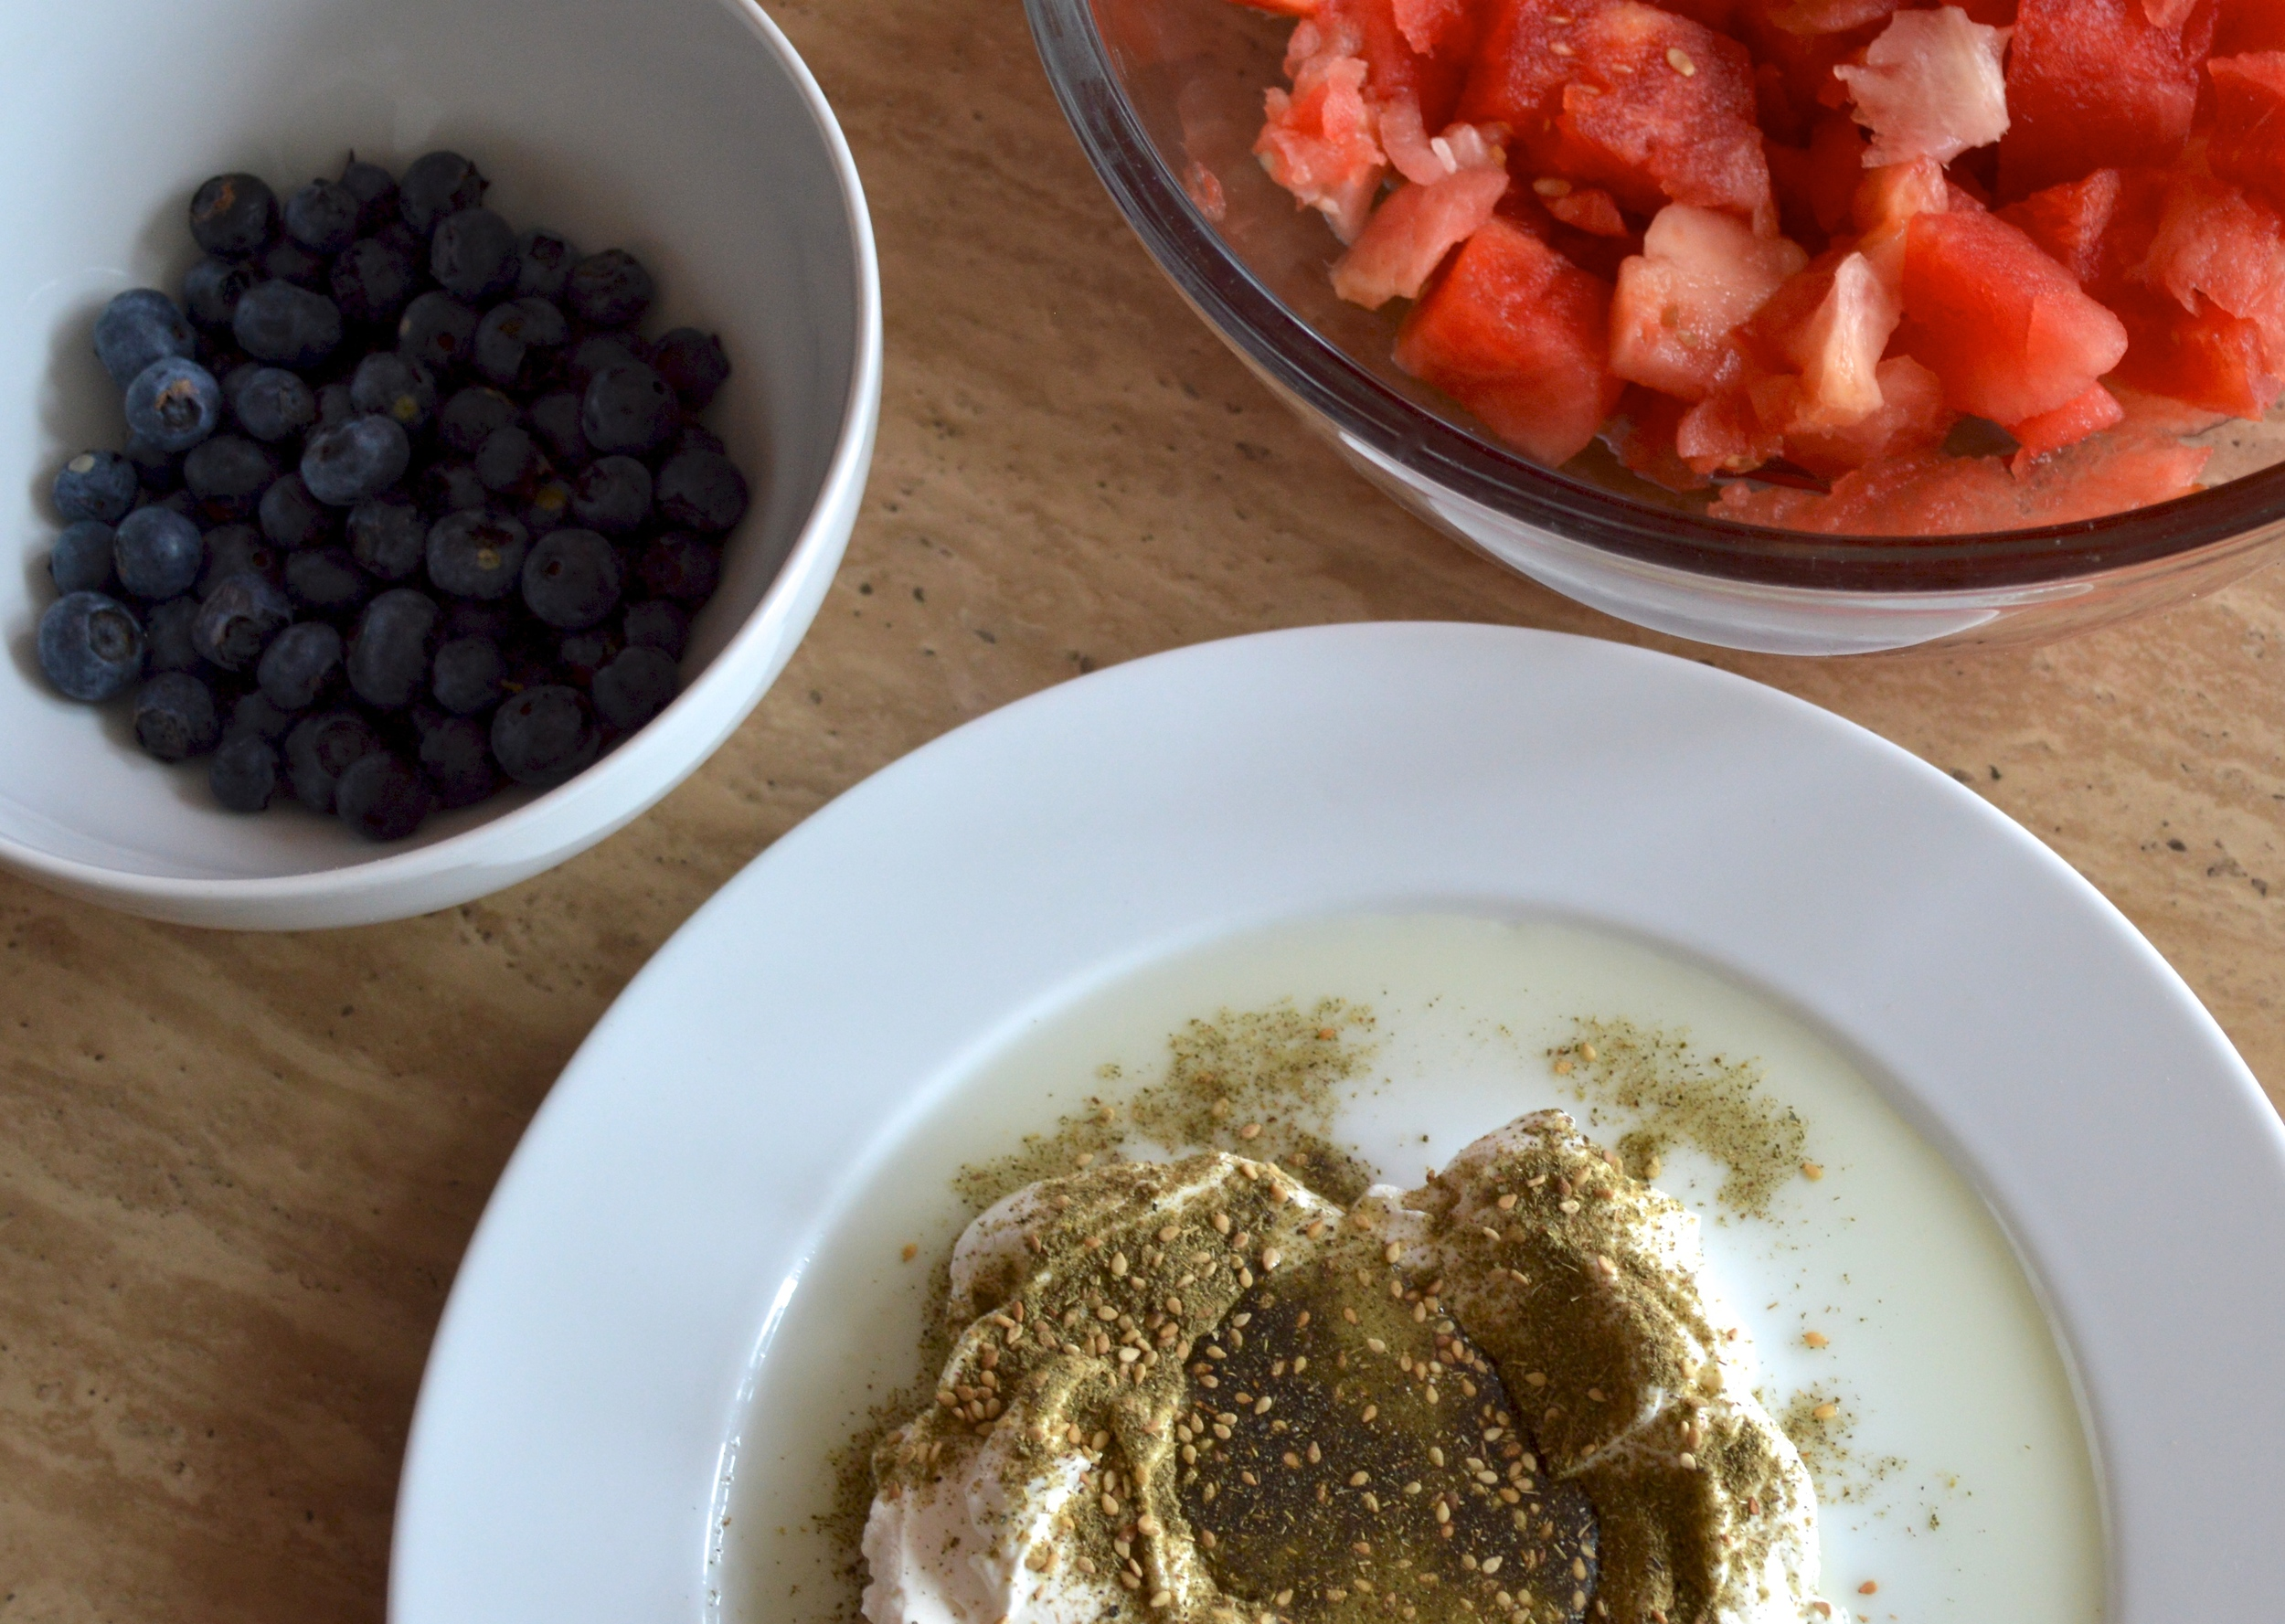 Blueberries, Watermelon, & Labneh with za'atar